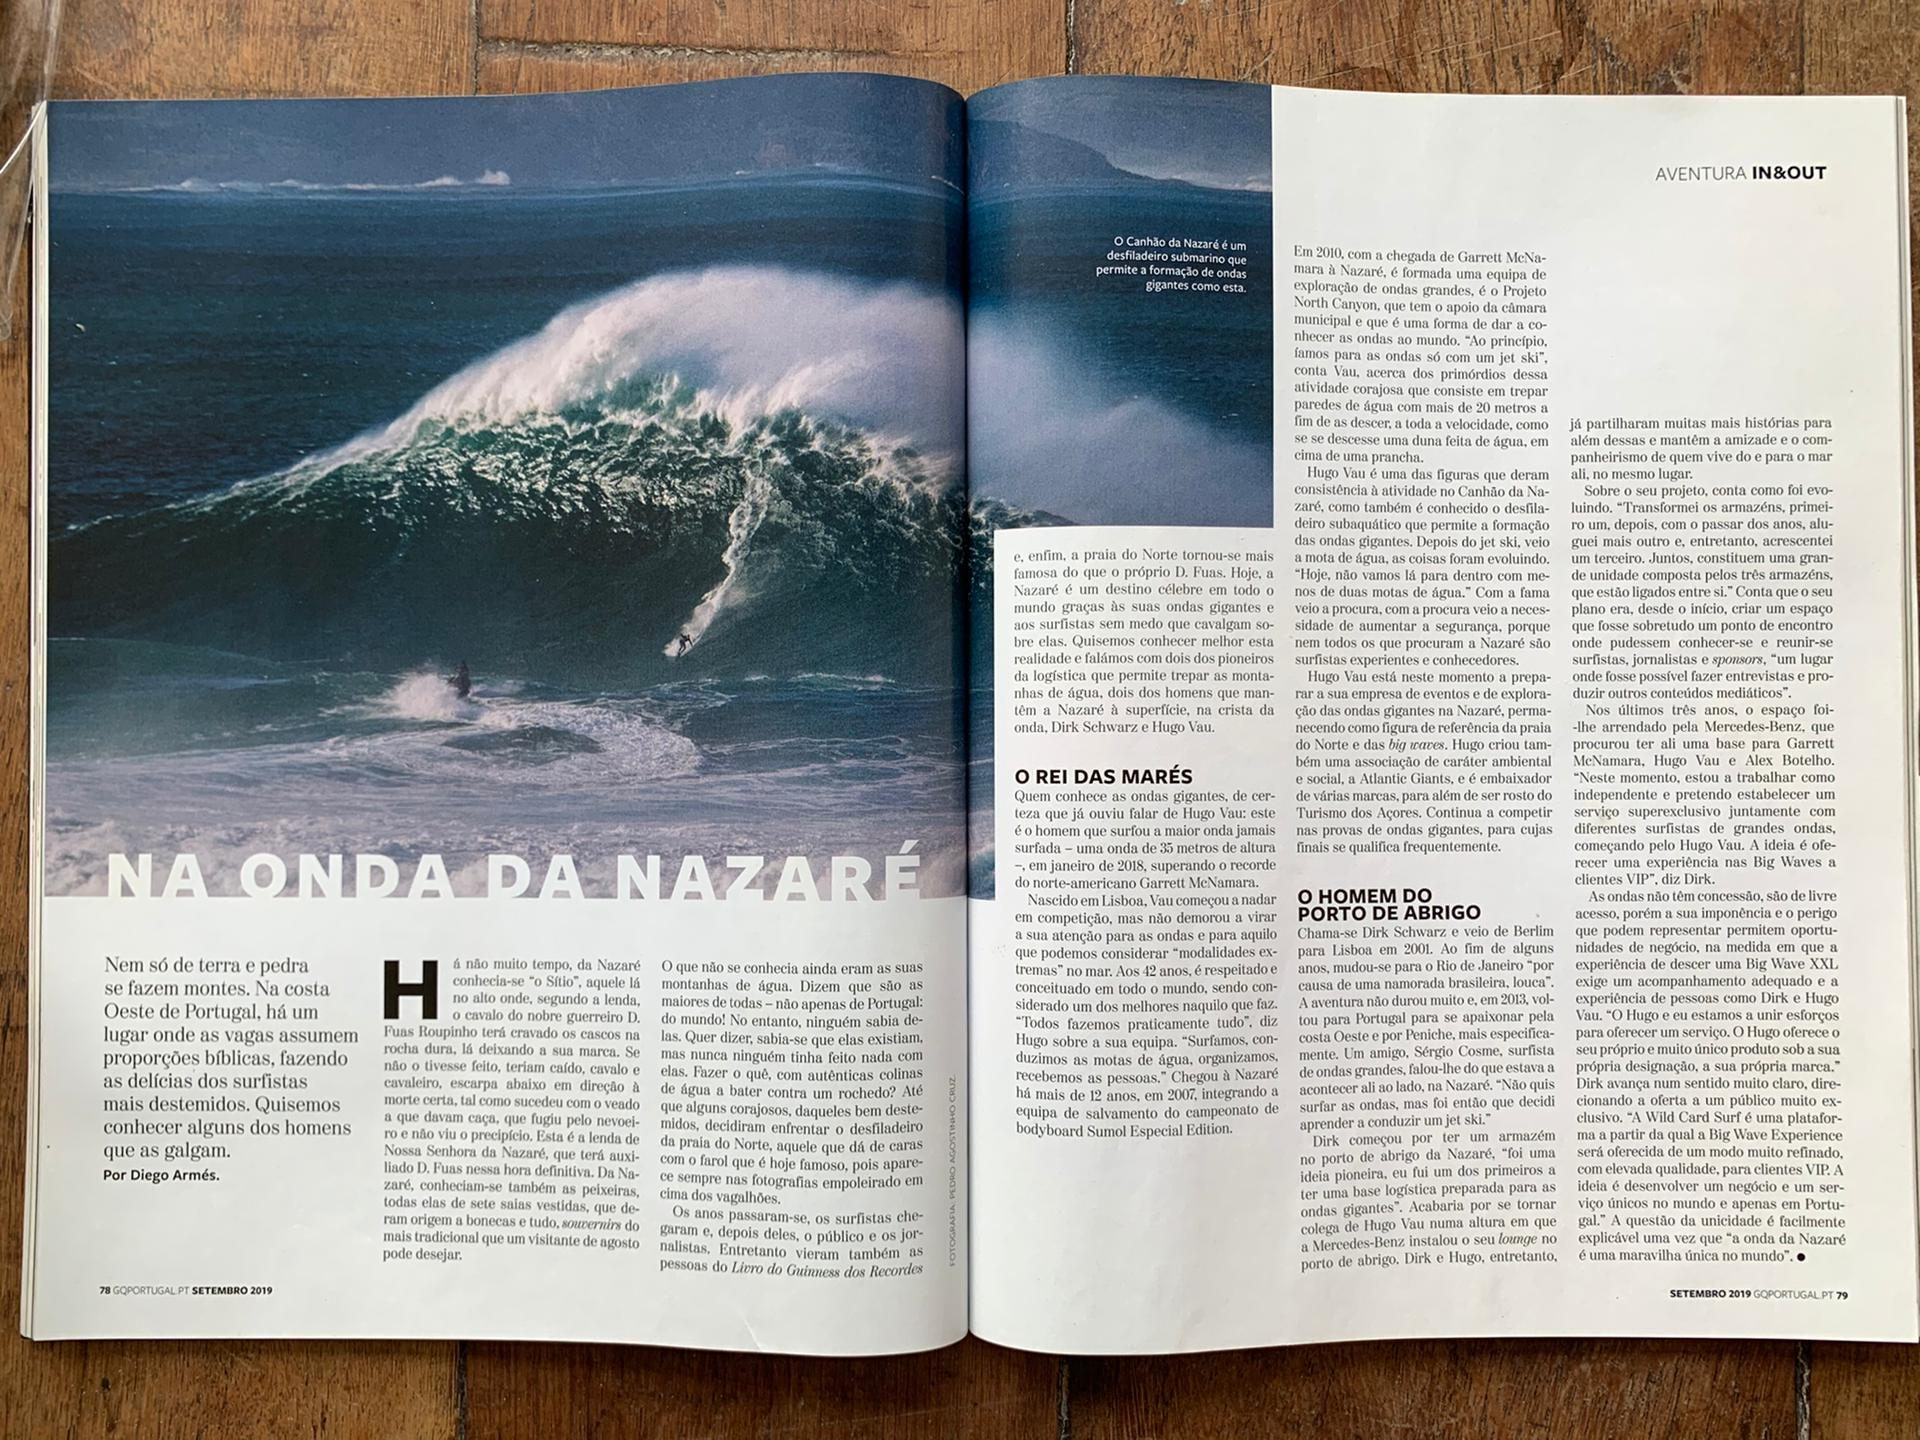 Ultimate Experience - Magazzine article about Nazaré - GQ